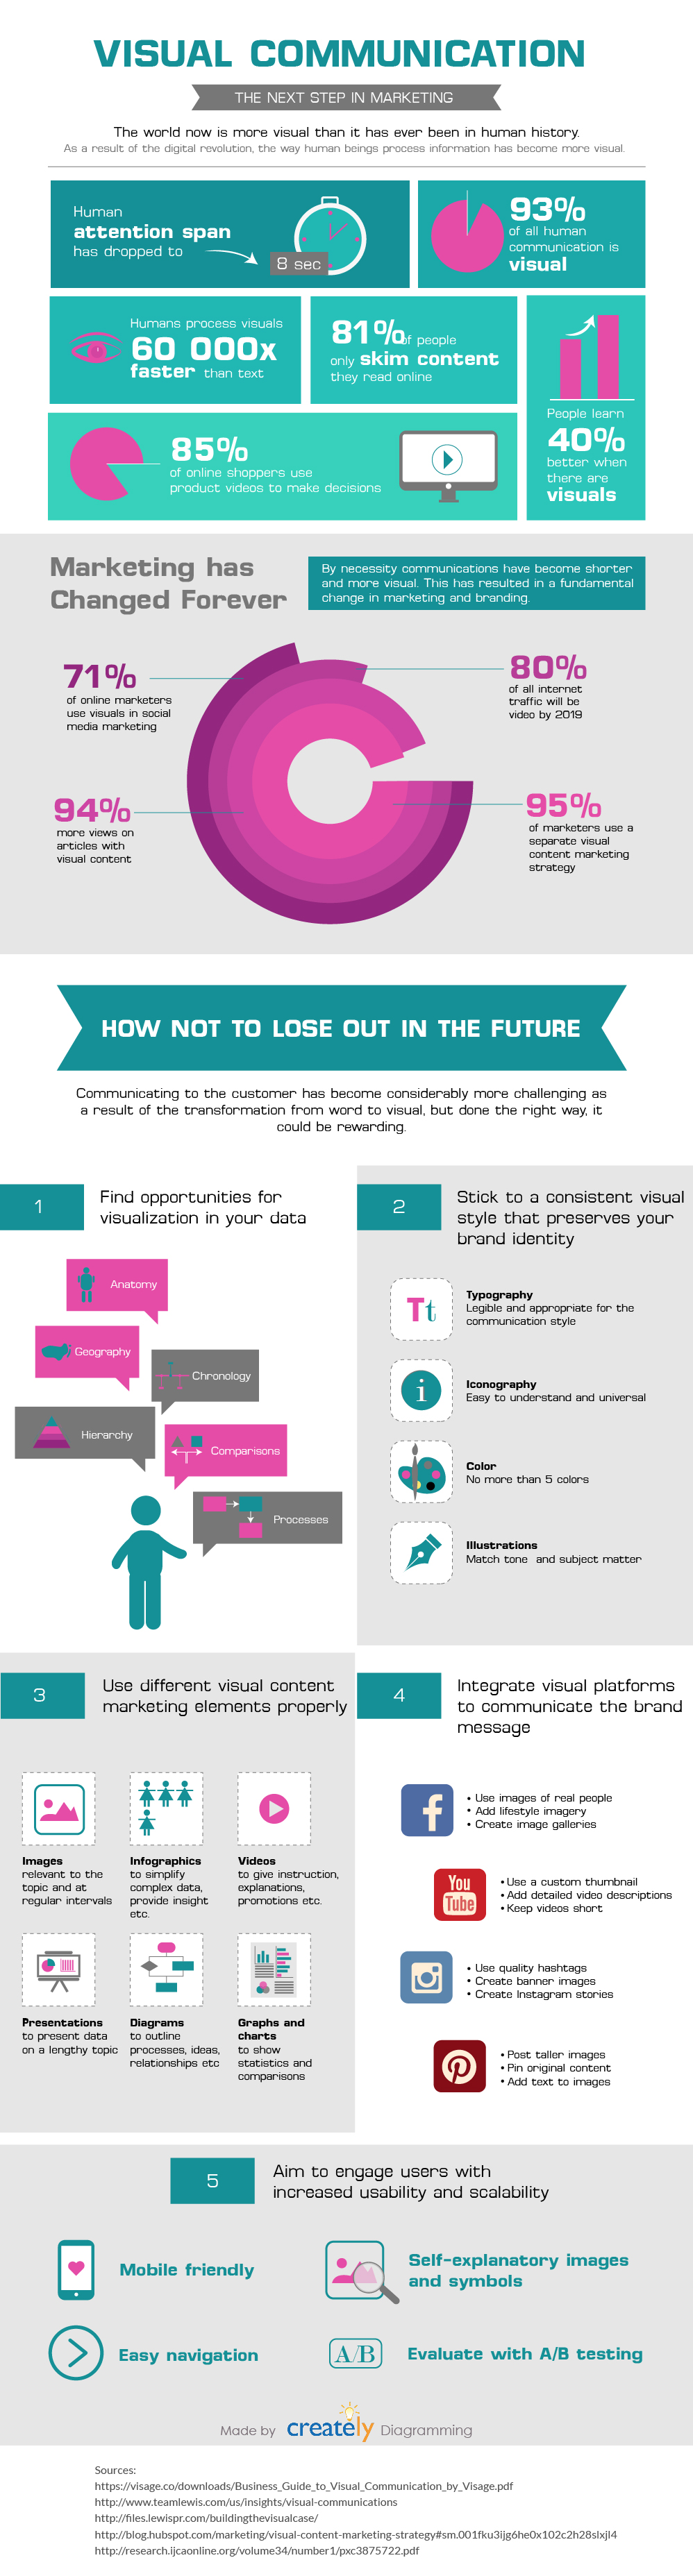 Why you need visual communication in marketing and how to do it right info-graphic